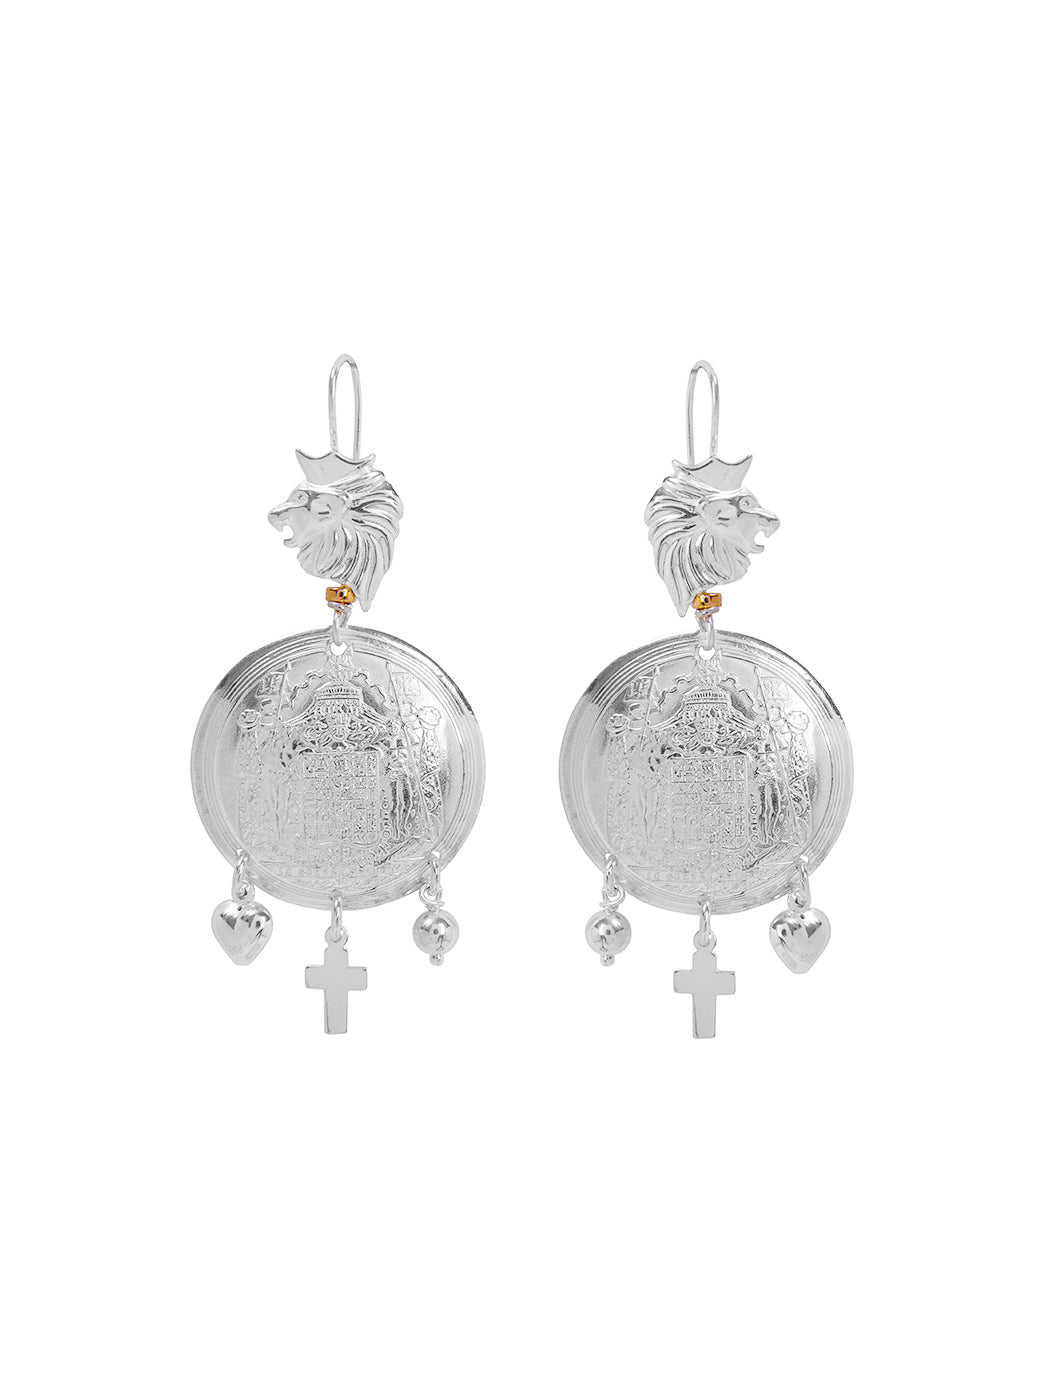 Fiorina Jewellery Leone Earrings